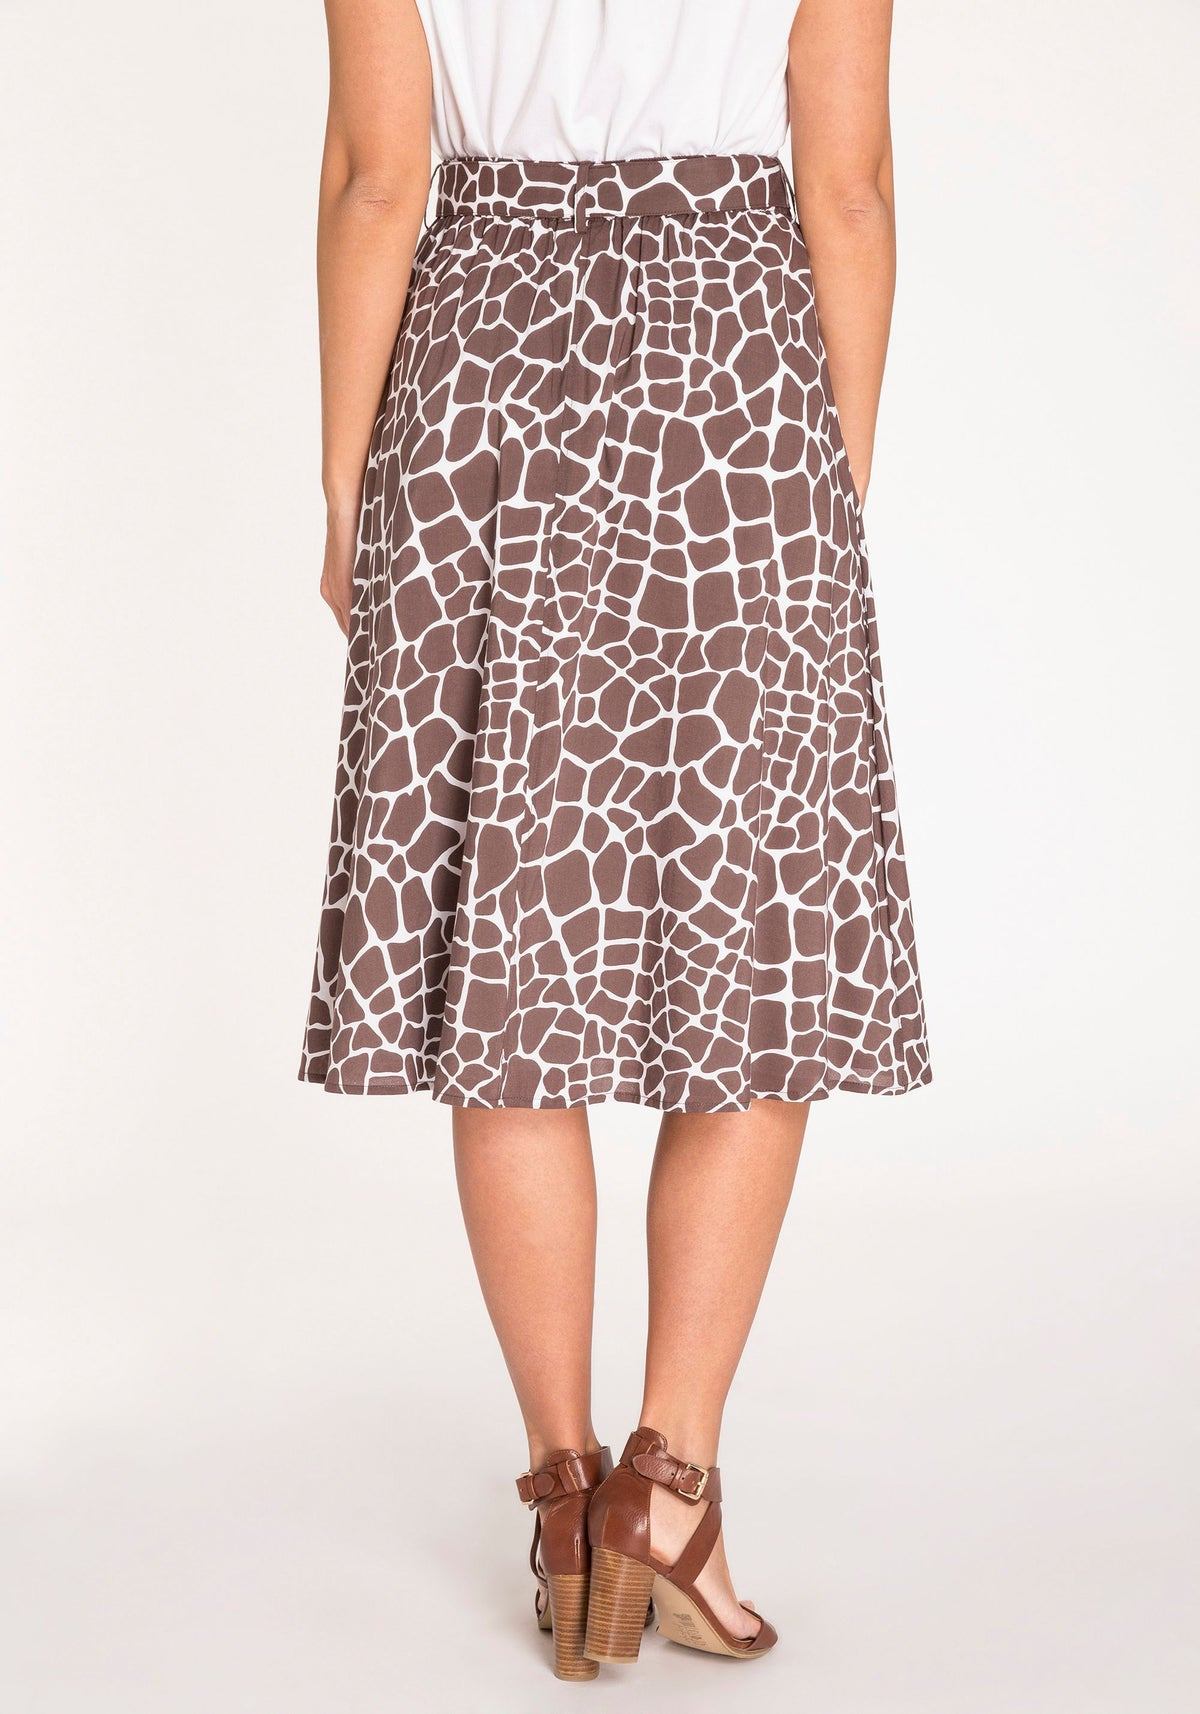 Giraffe Print Midi Length A-Line Skirt with Waist Tie & Front Button Closure